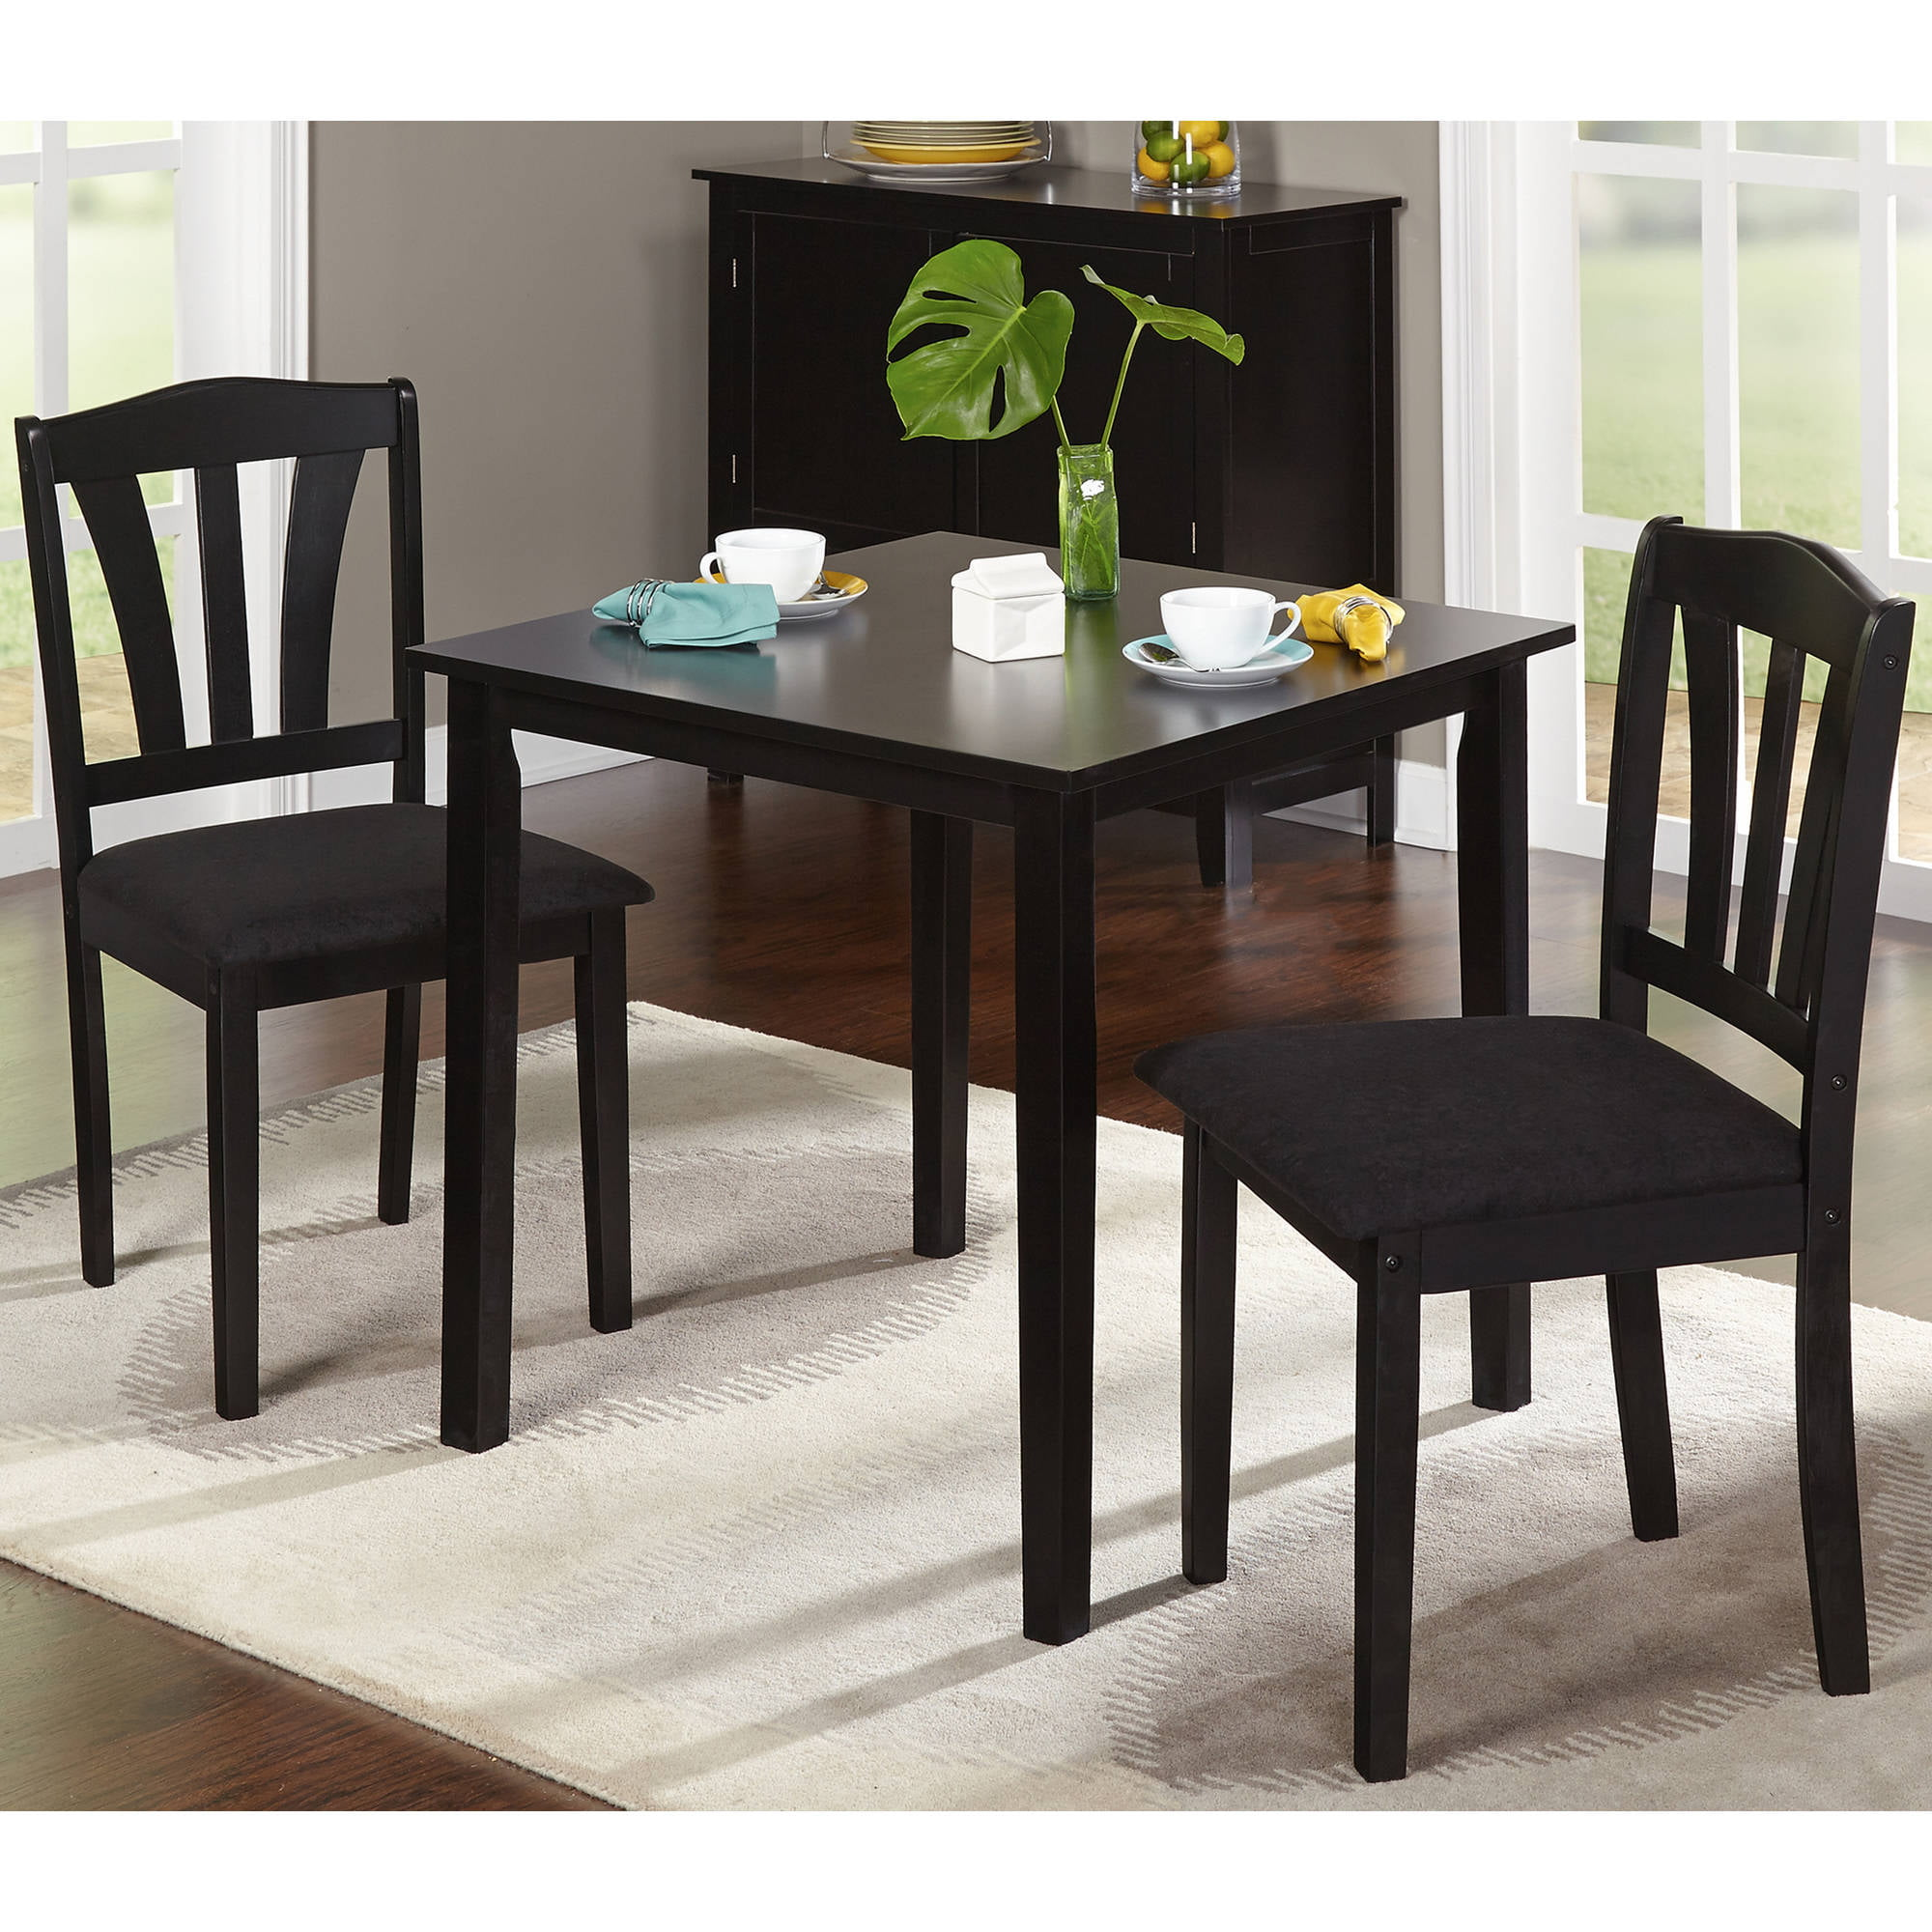 Costway 5 Pcs Pine Wood Dining Table Set 4 Upholstered Chair Breakfast Kitchen Furniture